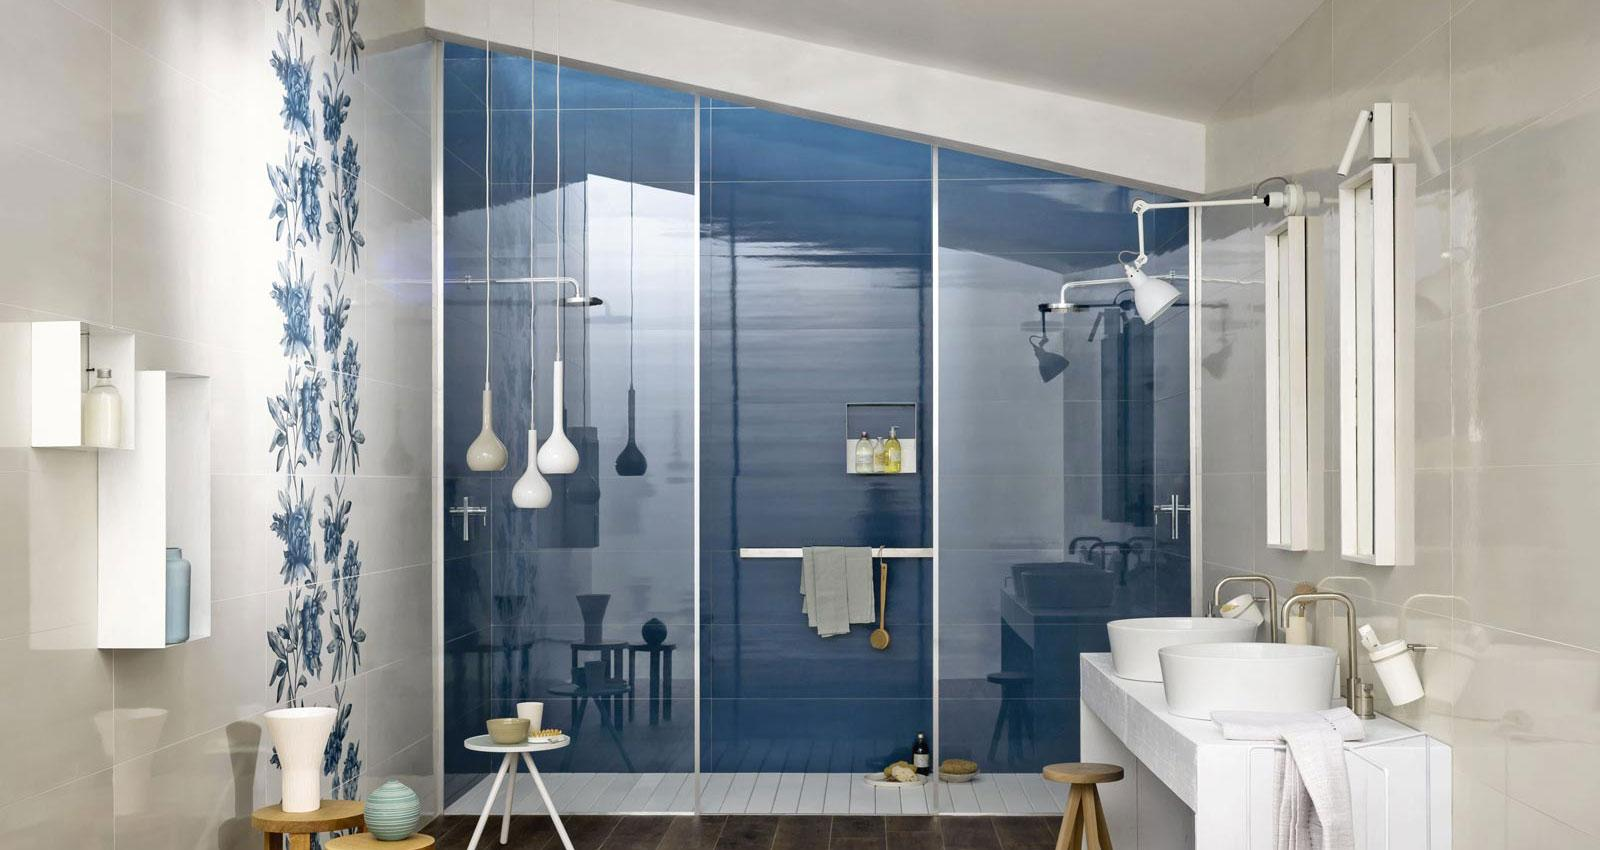 Imperfetto - Coloured porcelain bathroom tiles | Marazzi